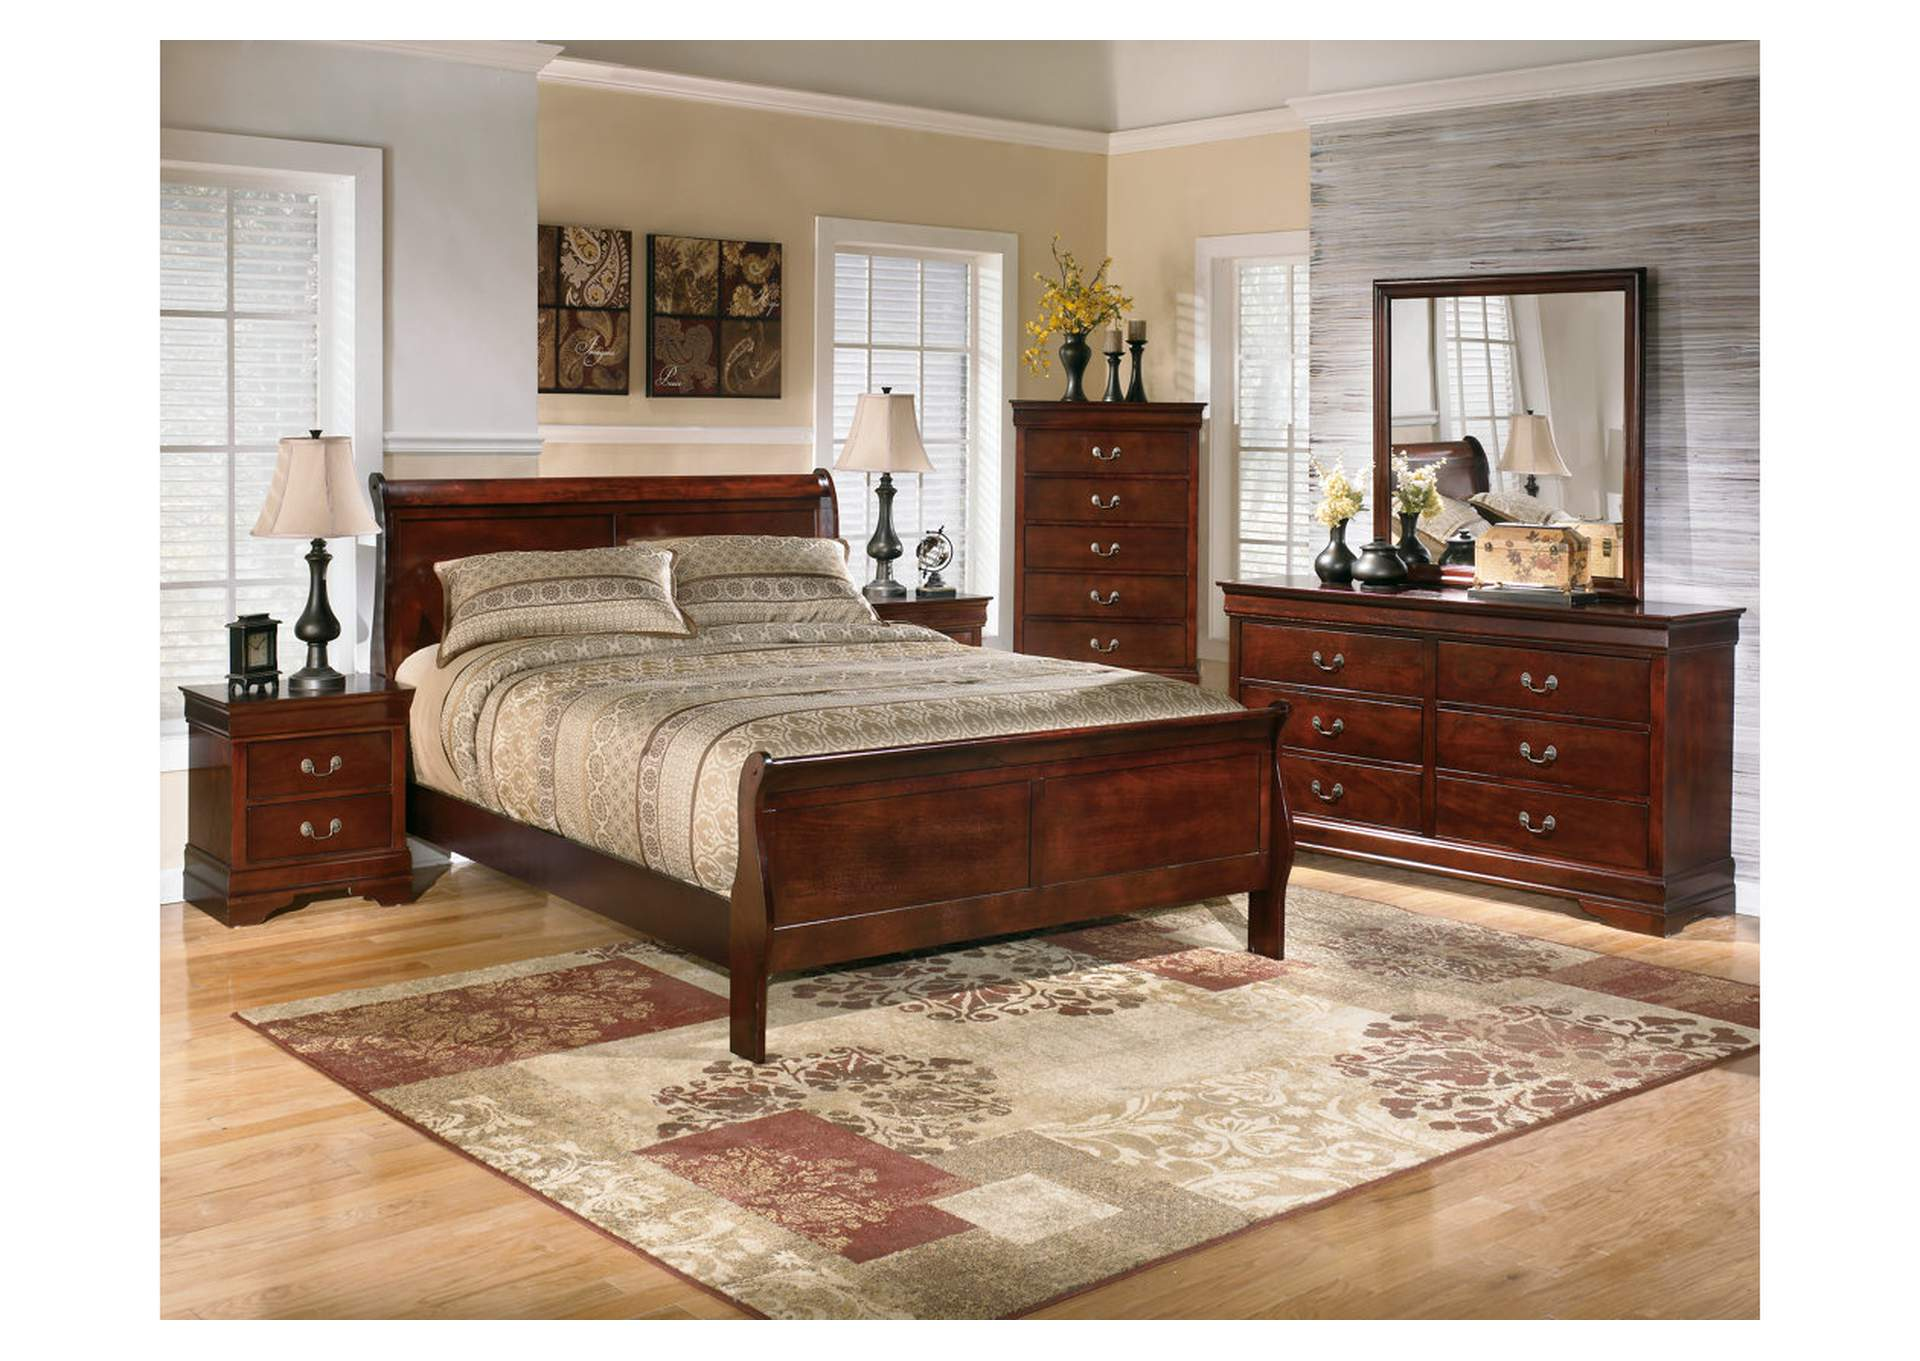 Alisdair King Sleigh Bed w/Dresser, Mirror, Drawer Chest & Nightstand,Signature Design By Ashley